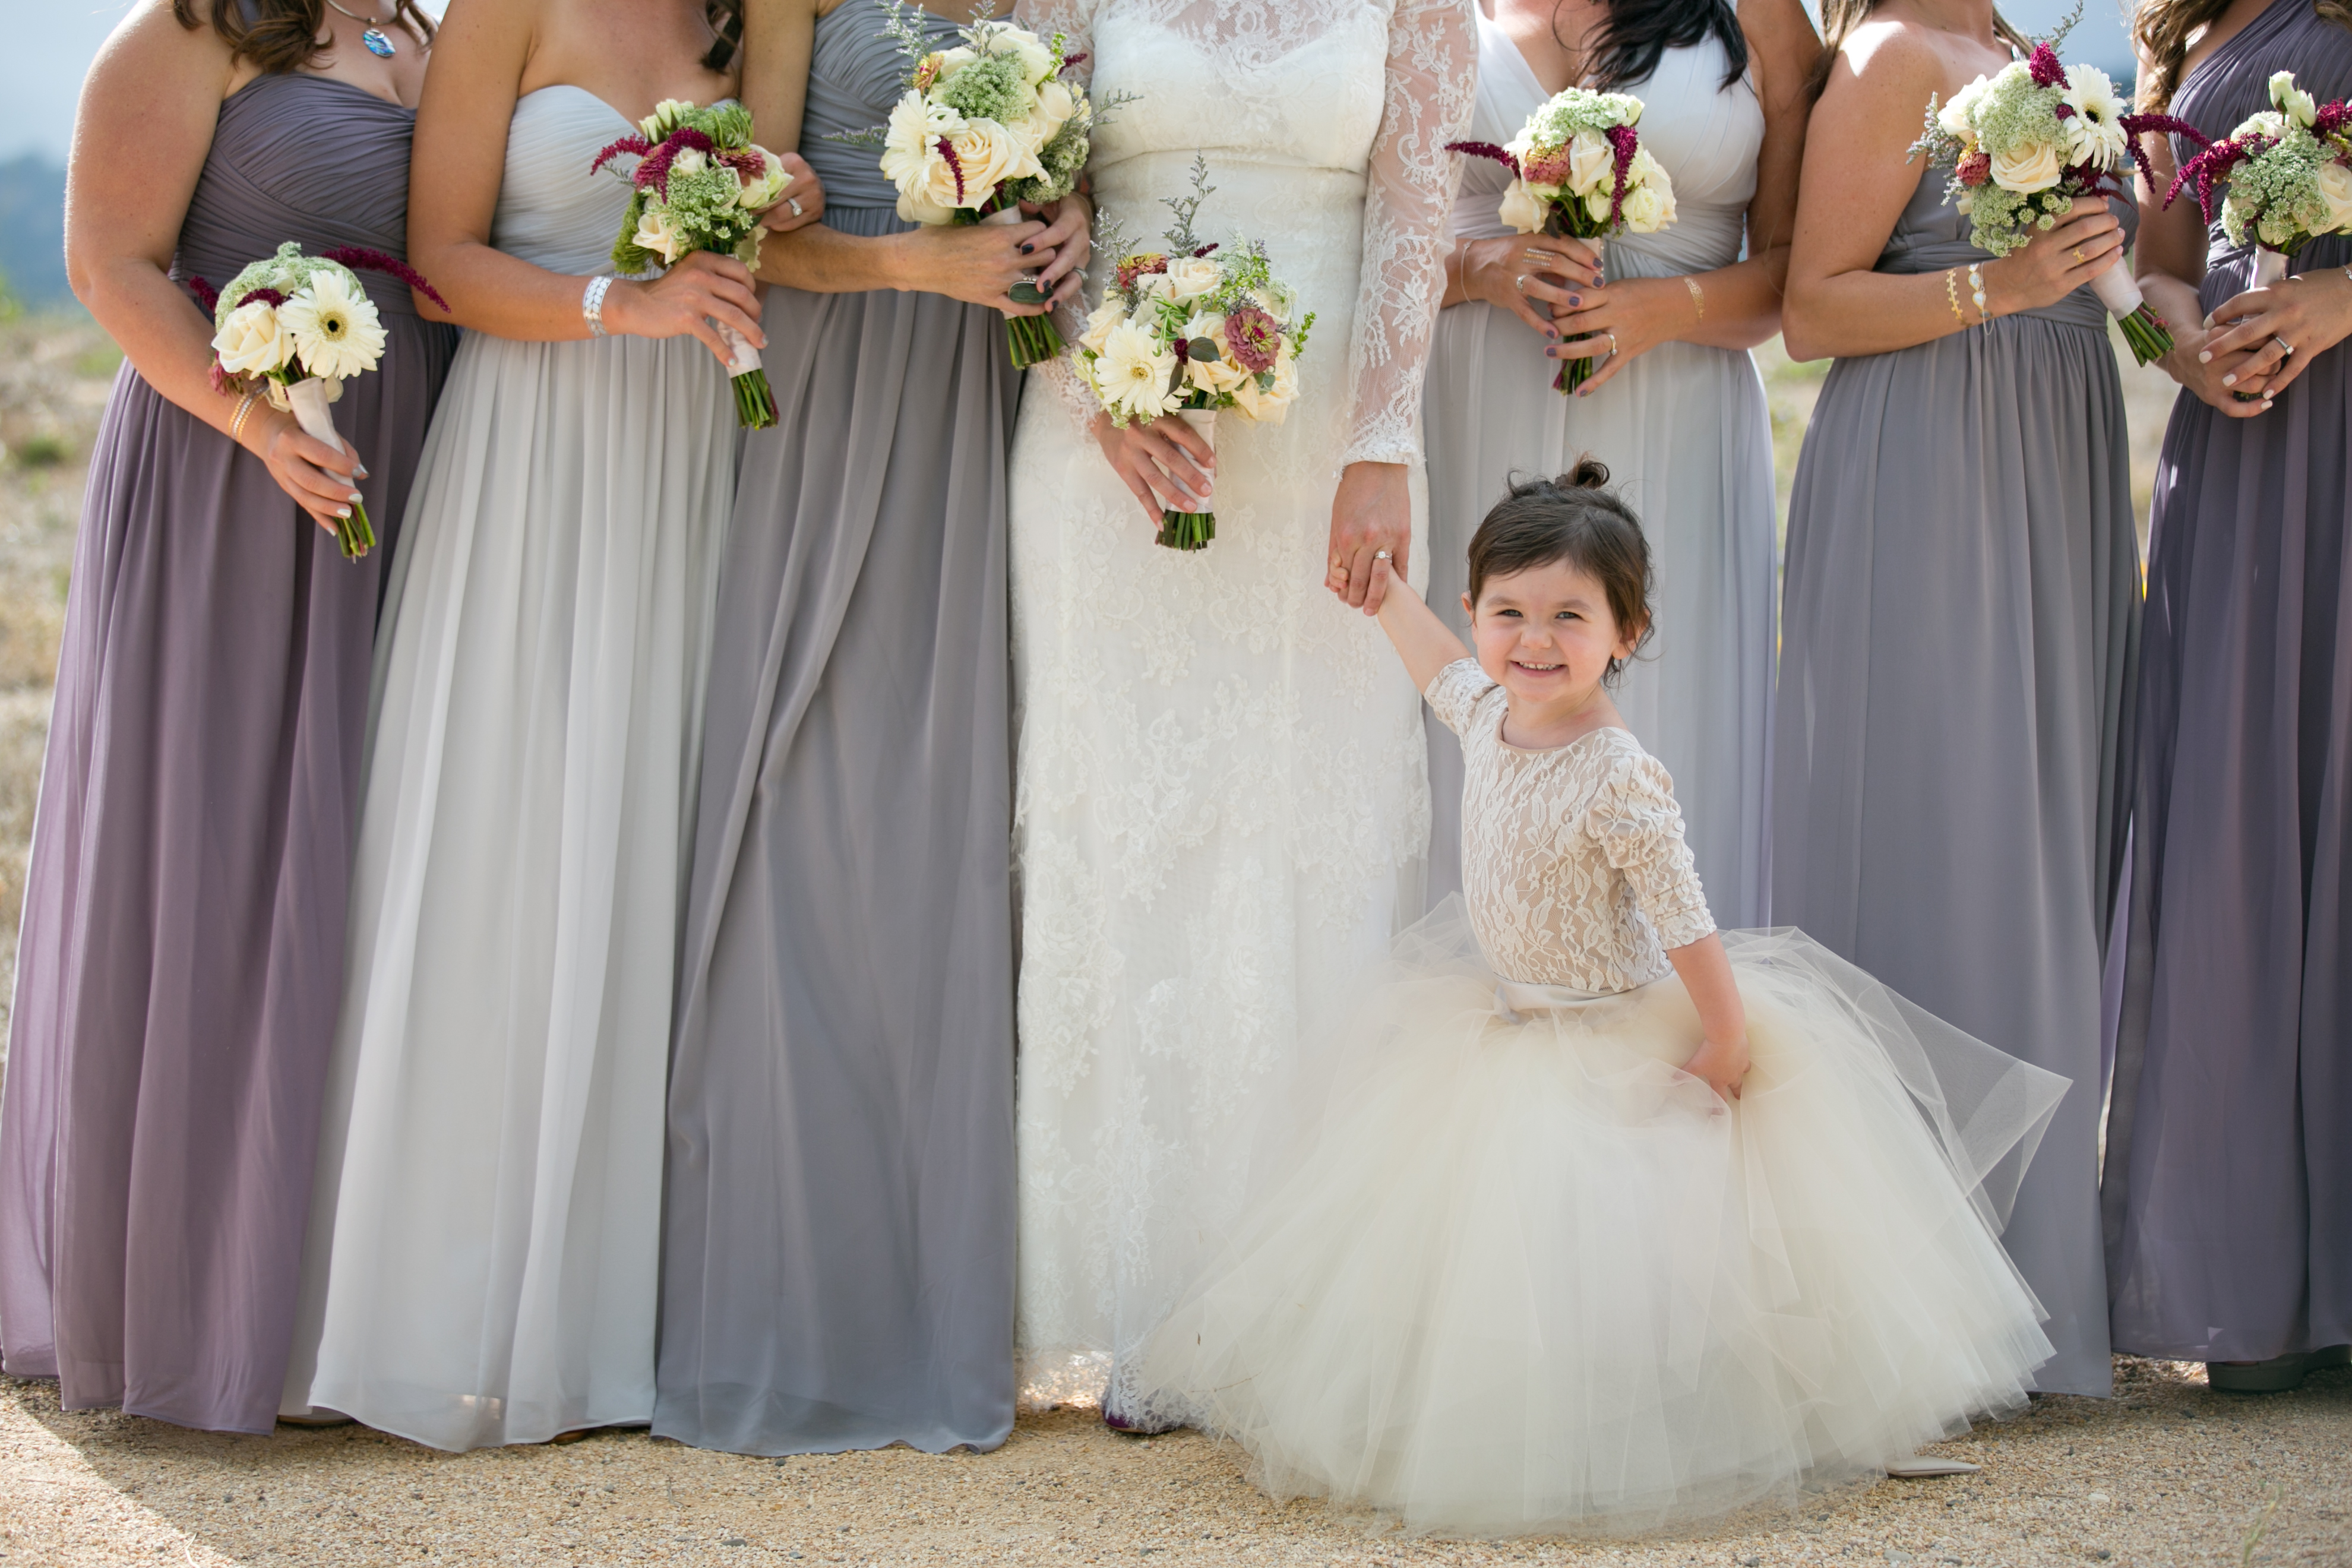 Something Borrowed Weddings and Events by Sierra Baxter Flower Girls and Ring Bearers